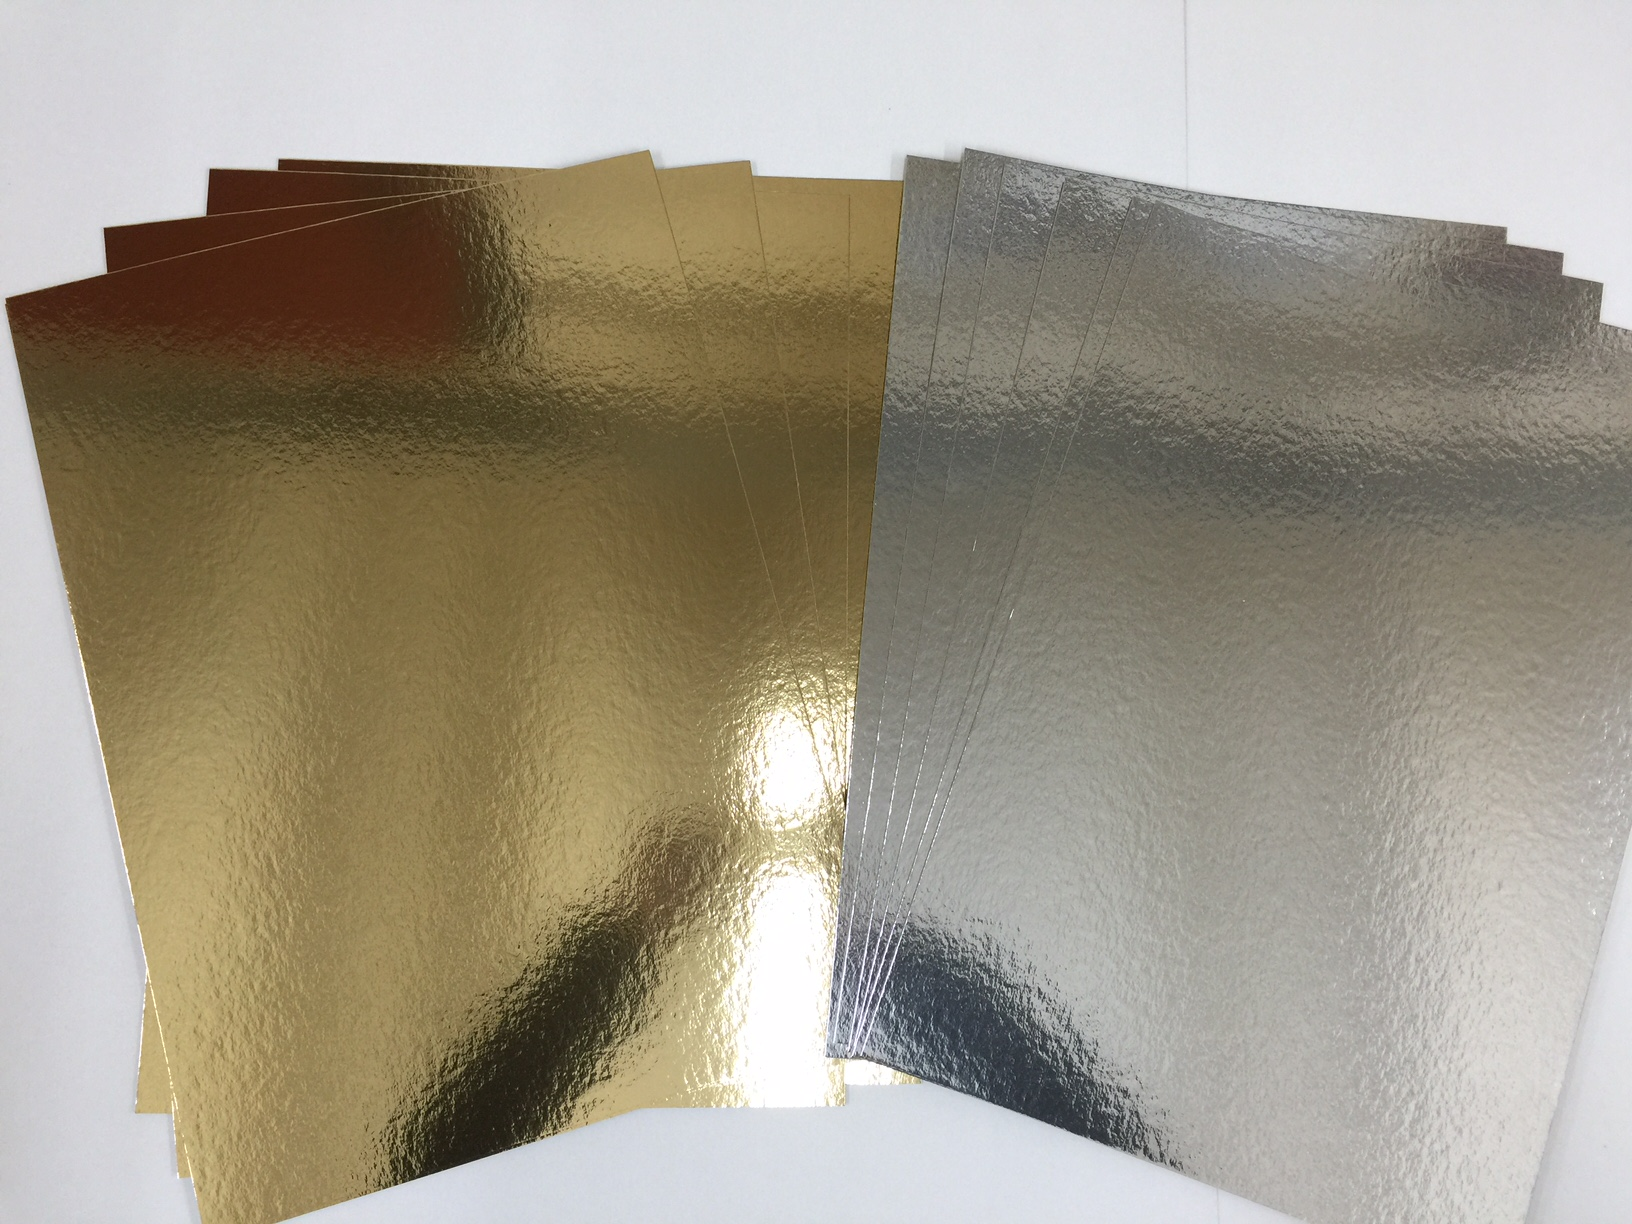 ( 10 ina pack ) A3 Gold & Silver Card Board Mirror - Xmas Metallic 1200micron 1.2mm-136